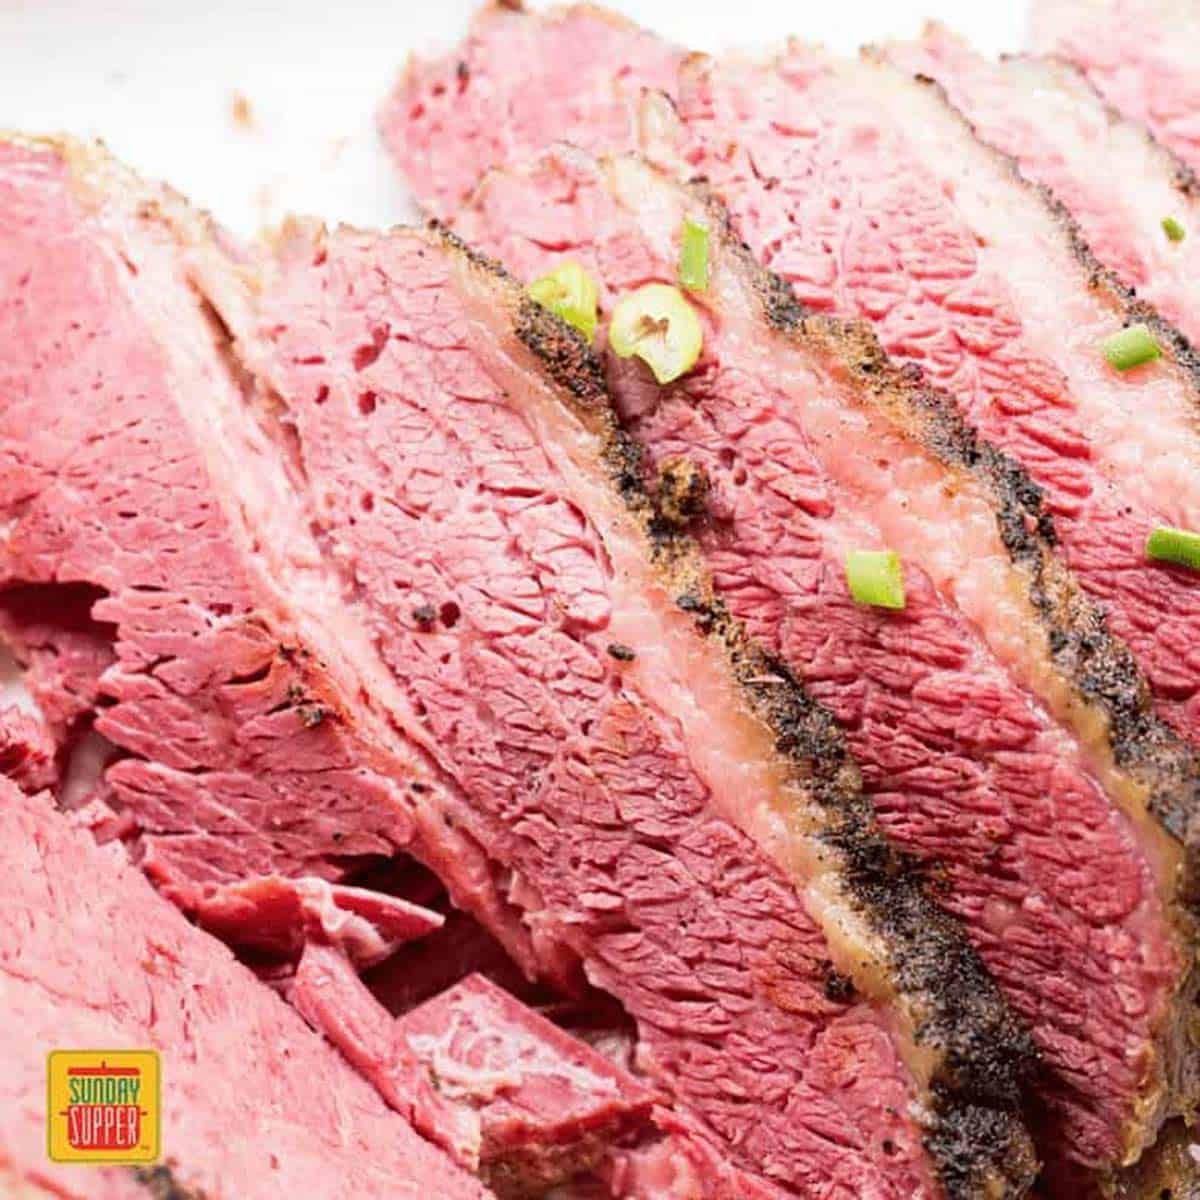 Slices of slow cooker brisket with green onions